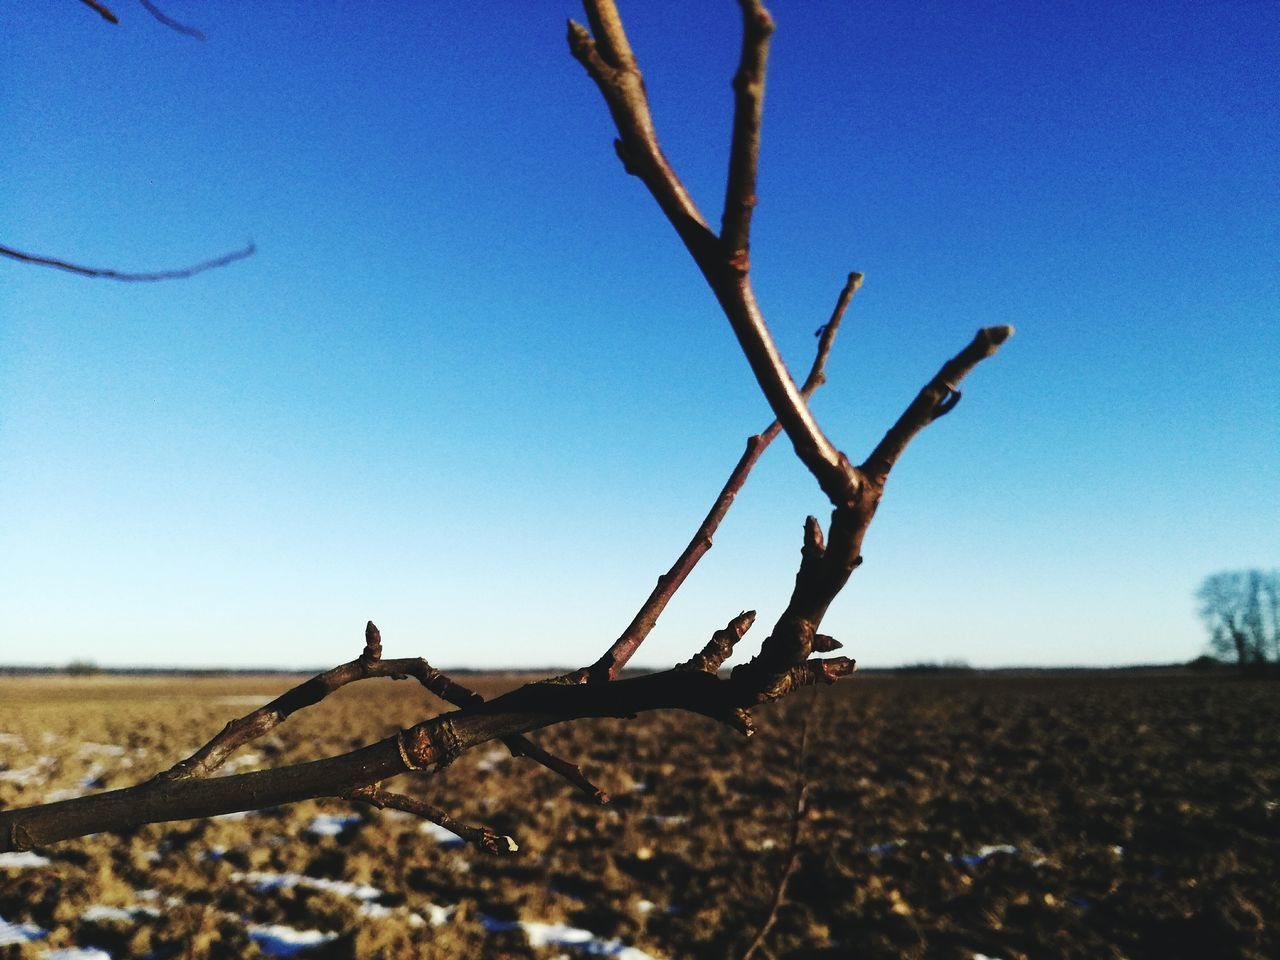 Blue Desert Landscape Branch Nature Outdoors Arid Climate Scenics Sky Illuminated Earth Colours Grassfield Space Winter Beauty In Nature Shiny Sunlight High Angle View The Way Forward Sun Rays Shadow No People Day Tree Sand EyeEmNewHere